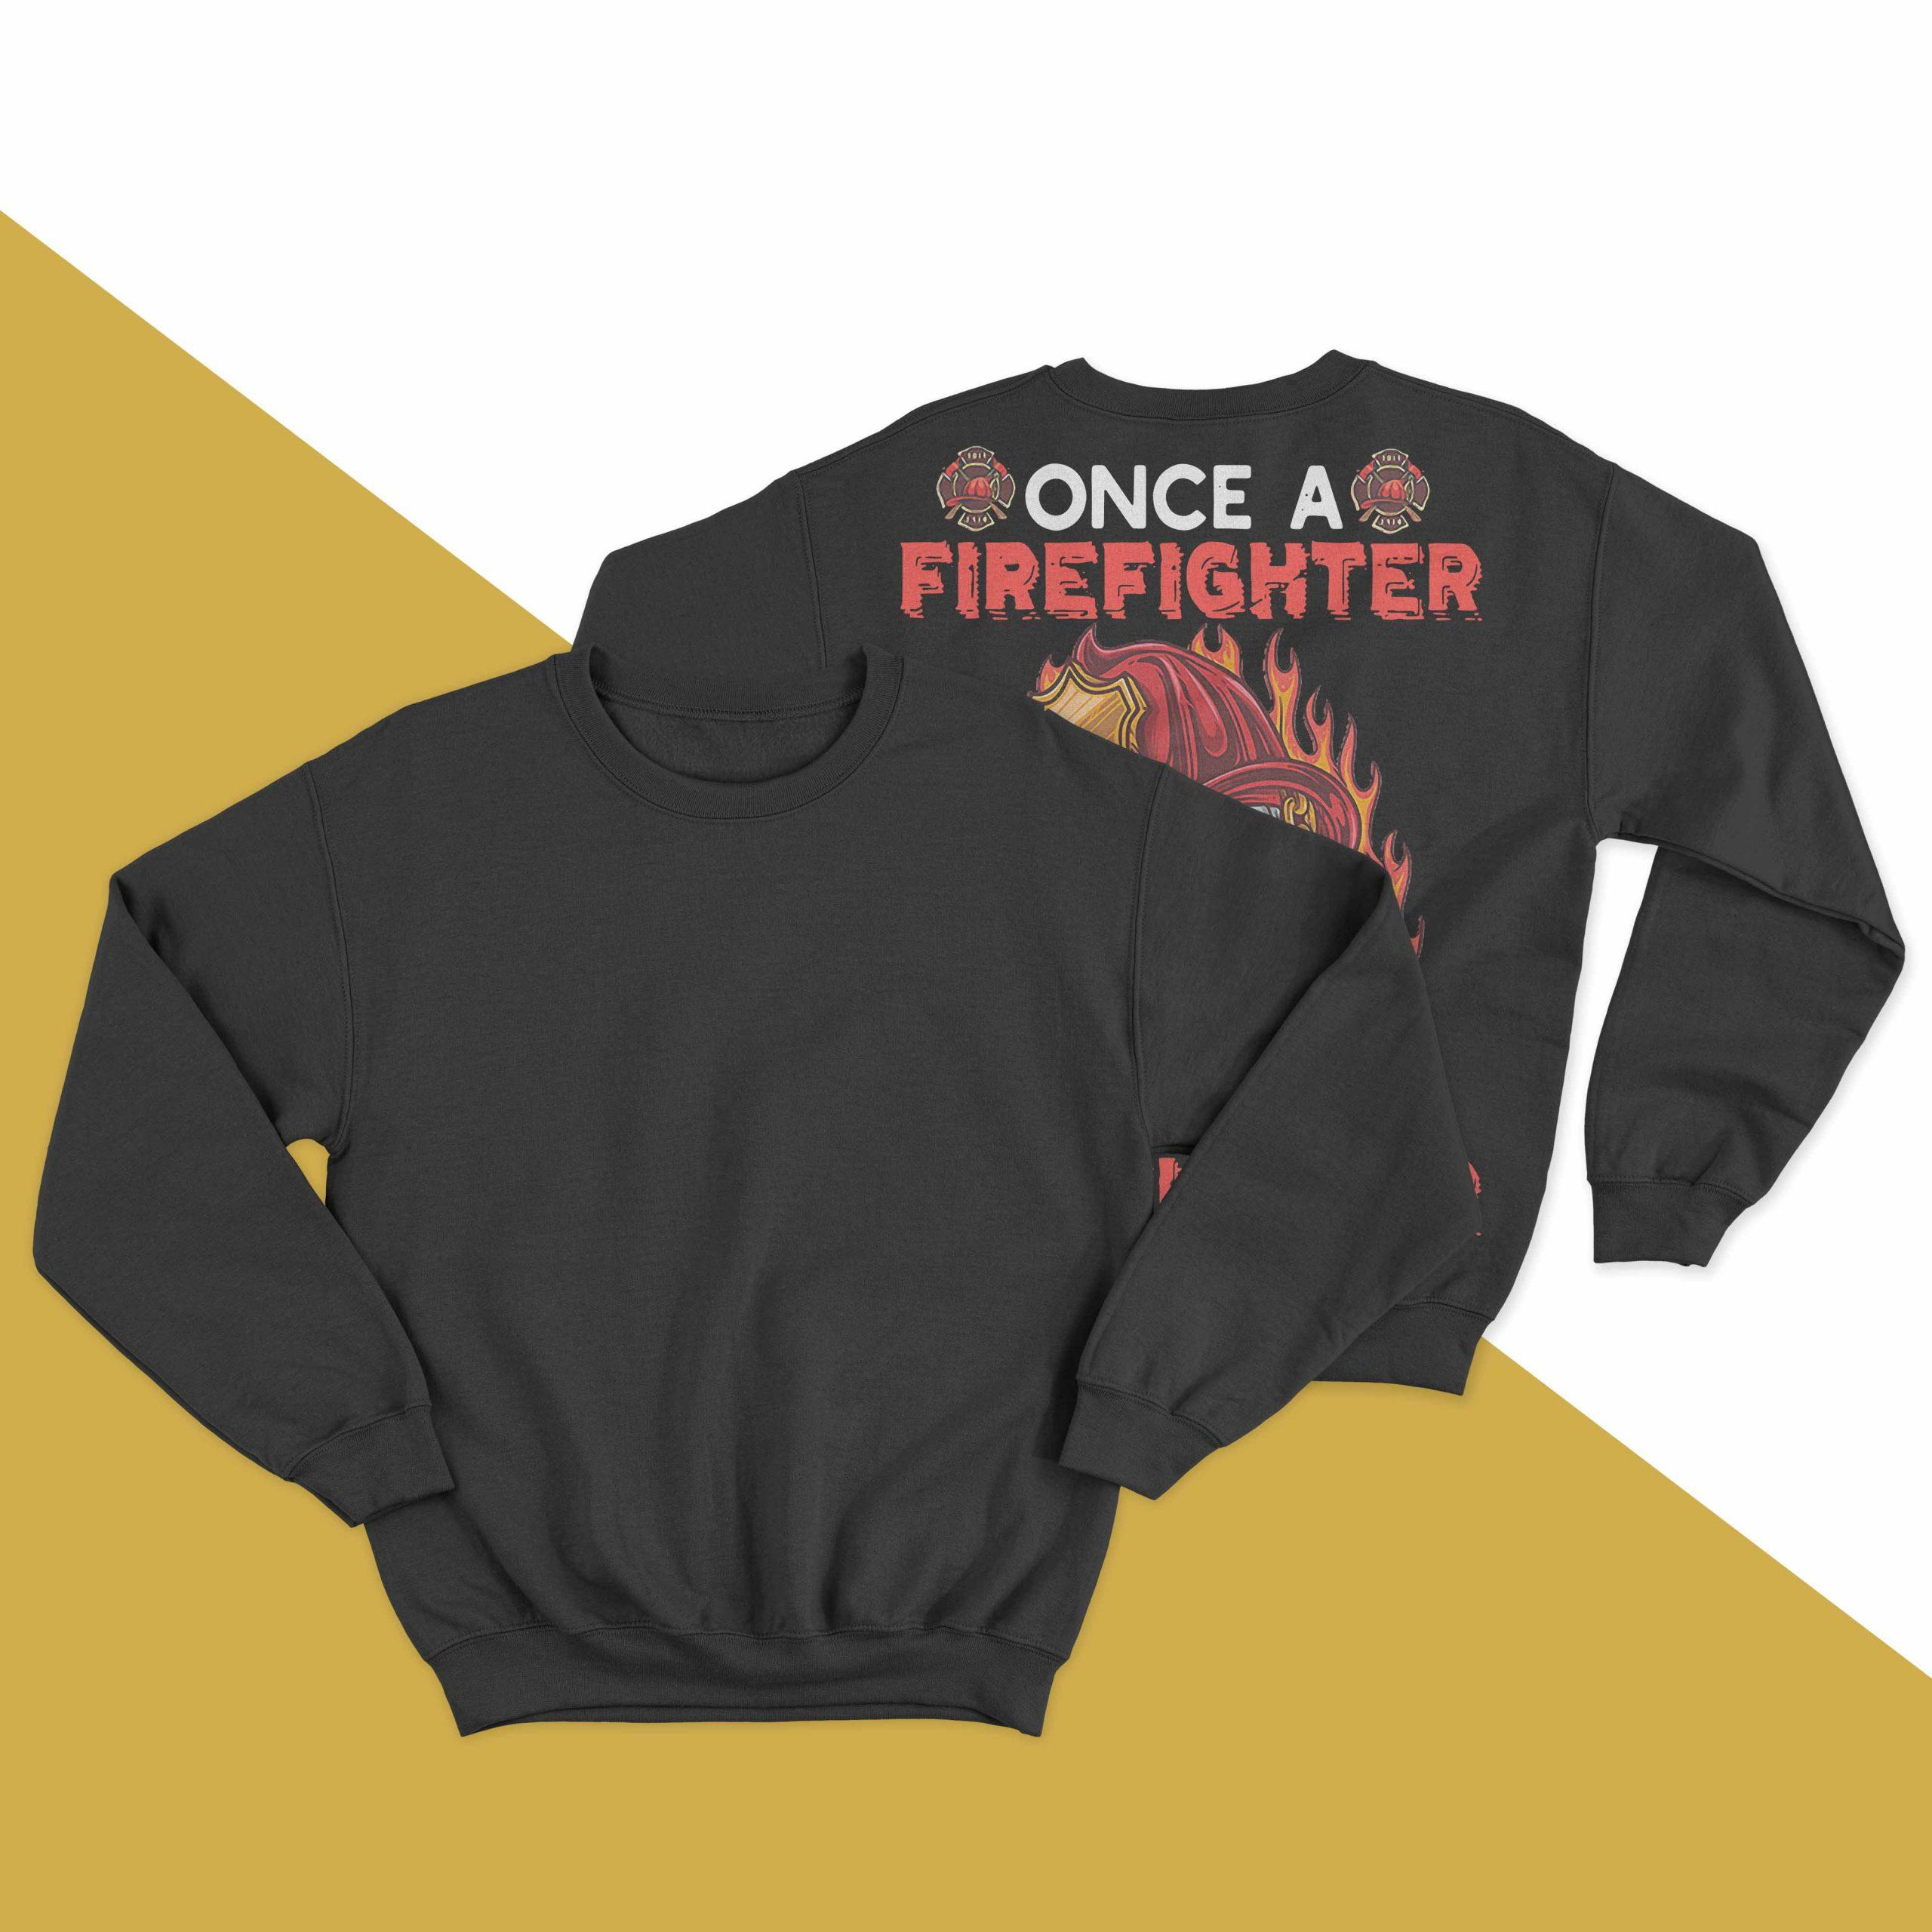 Once A Firefighter Always A Firefighter Sweater